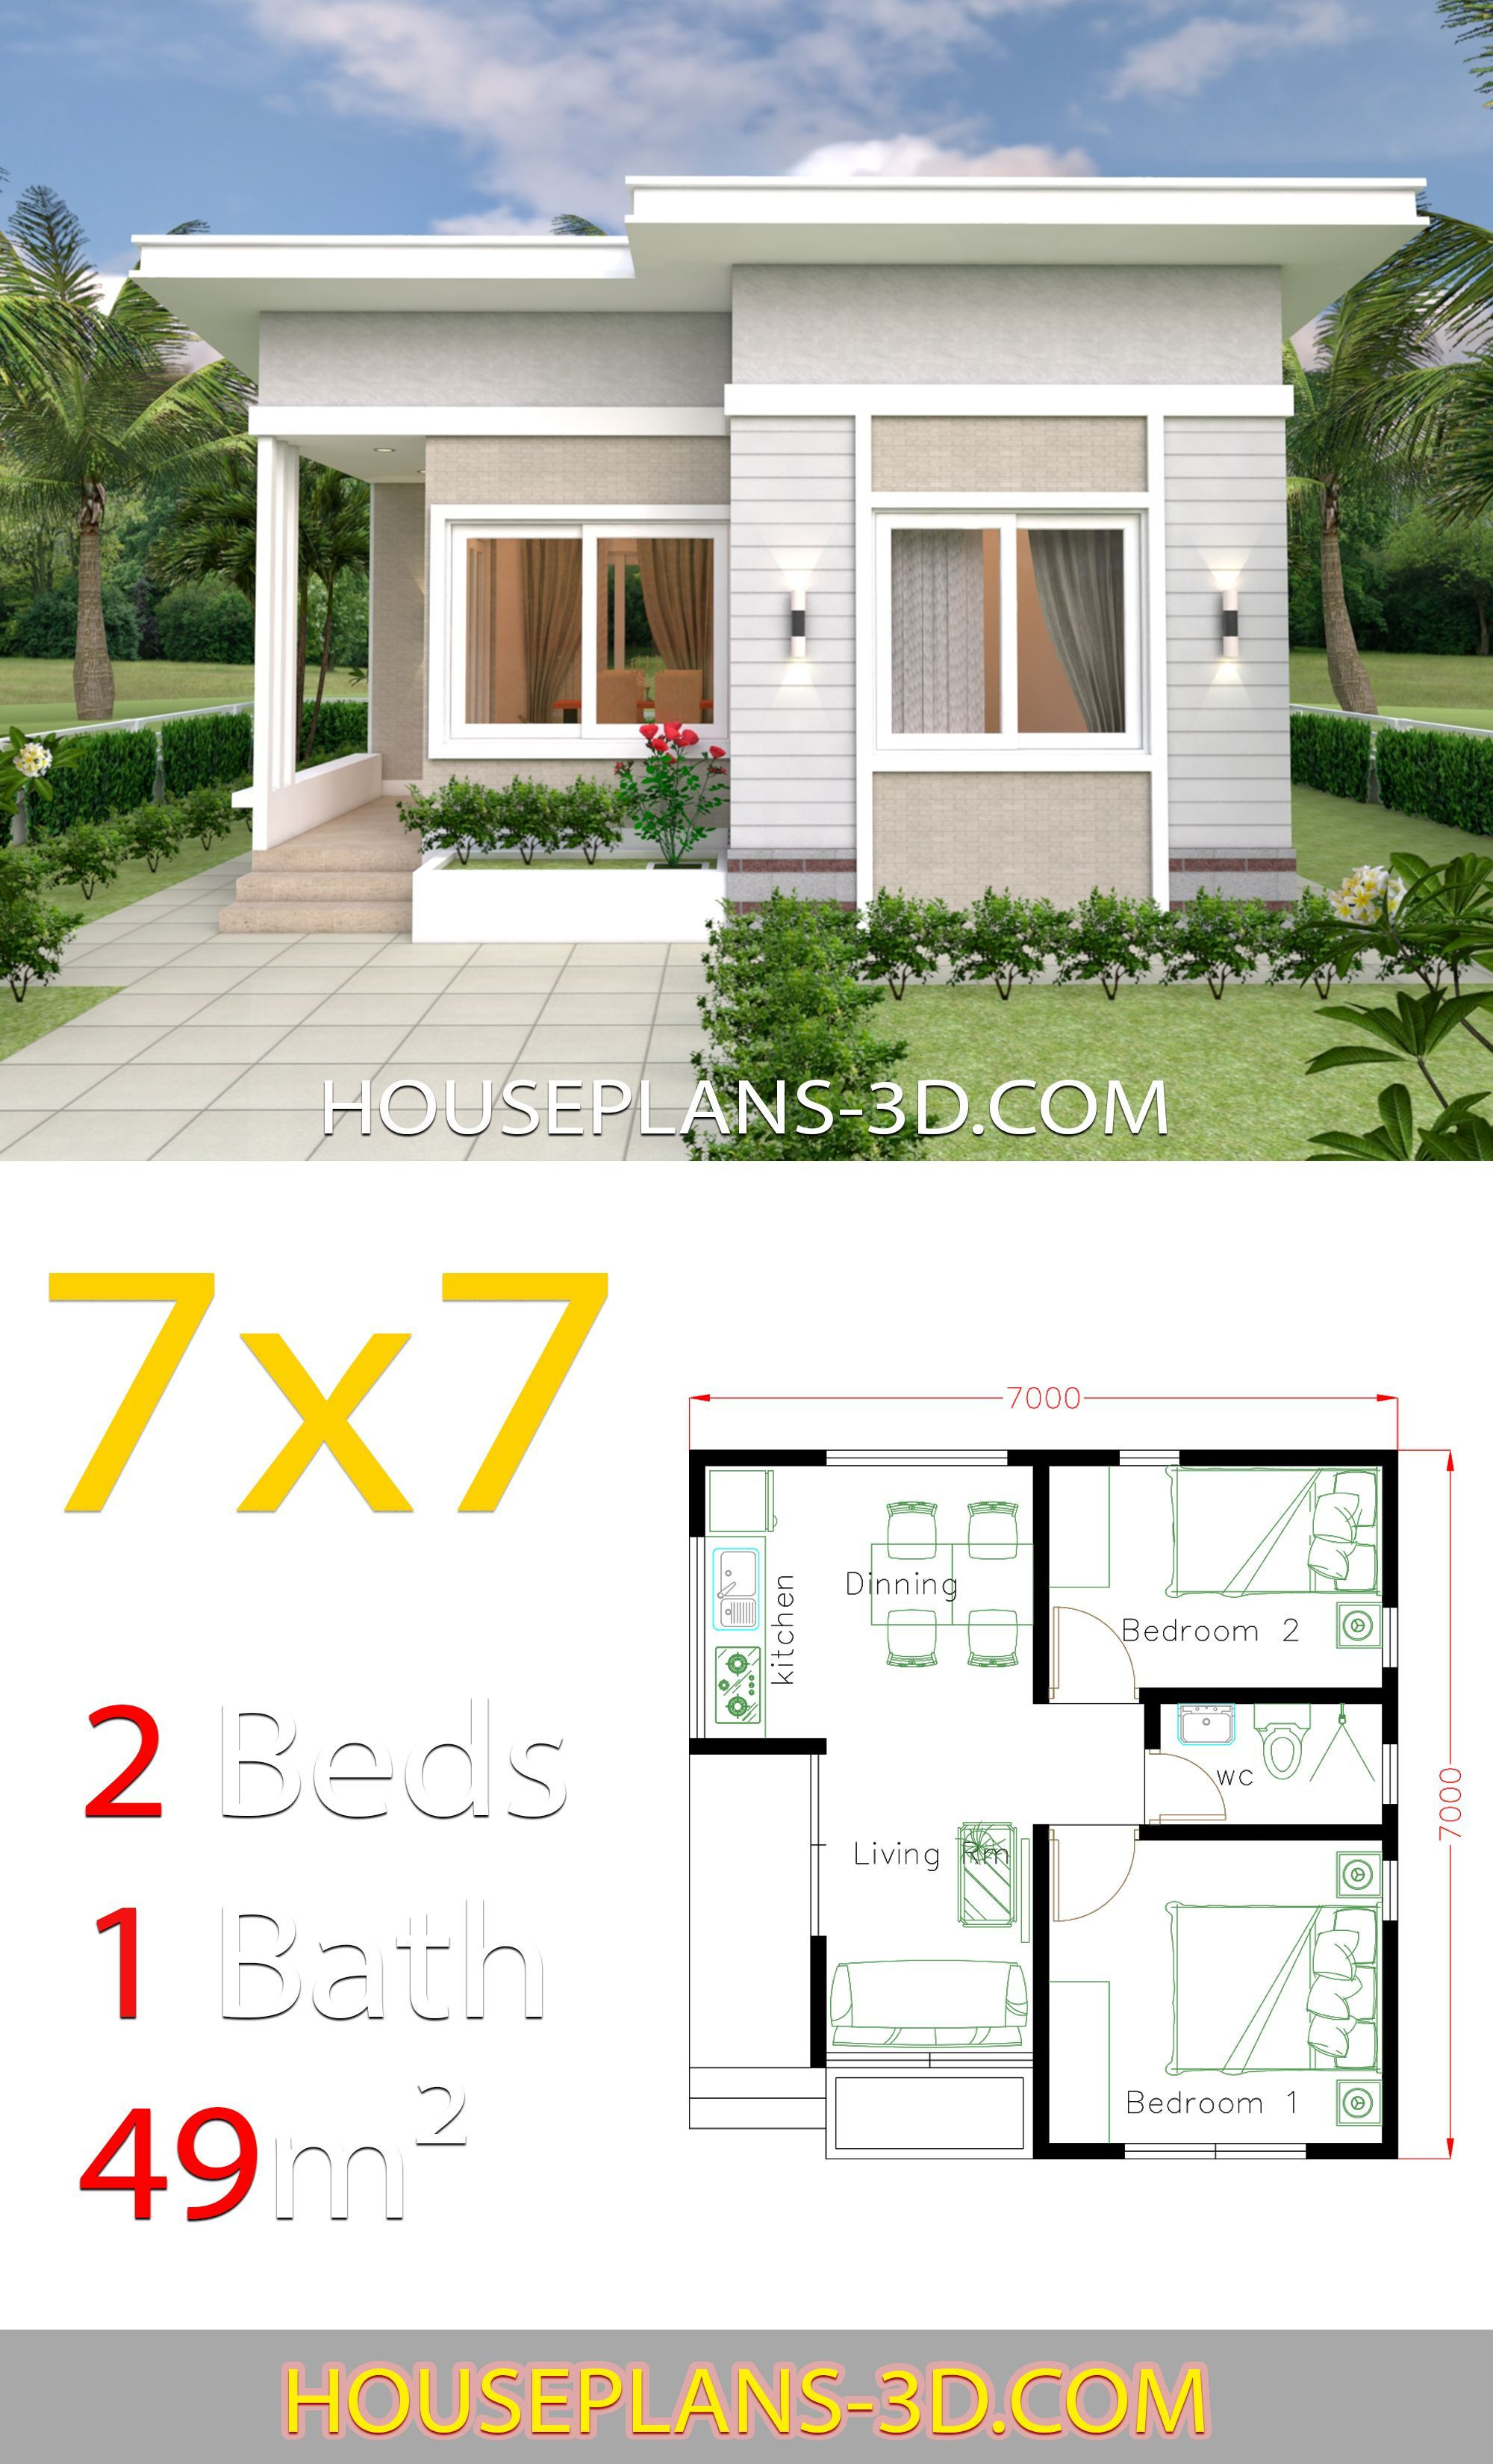 Small House Design Plans Luxury Small House Design 7x7 with 2 Bedrooms House Plans 3d